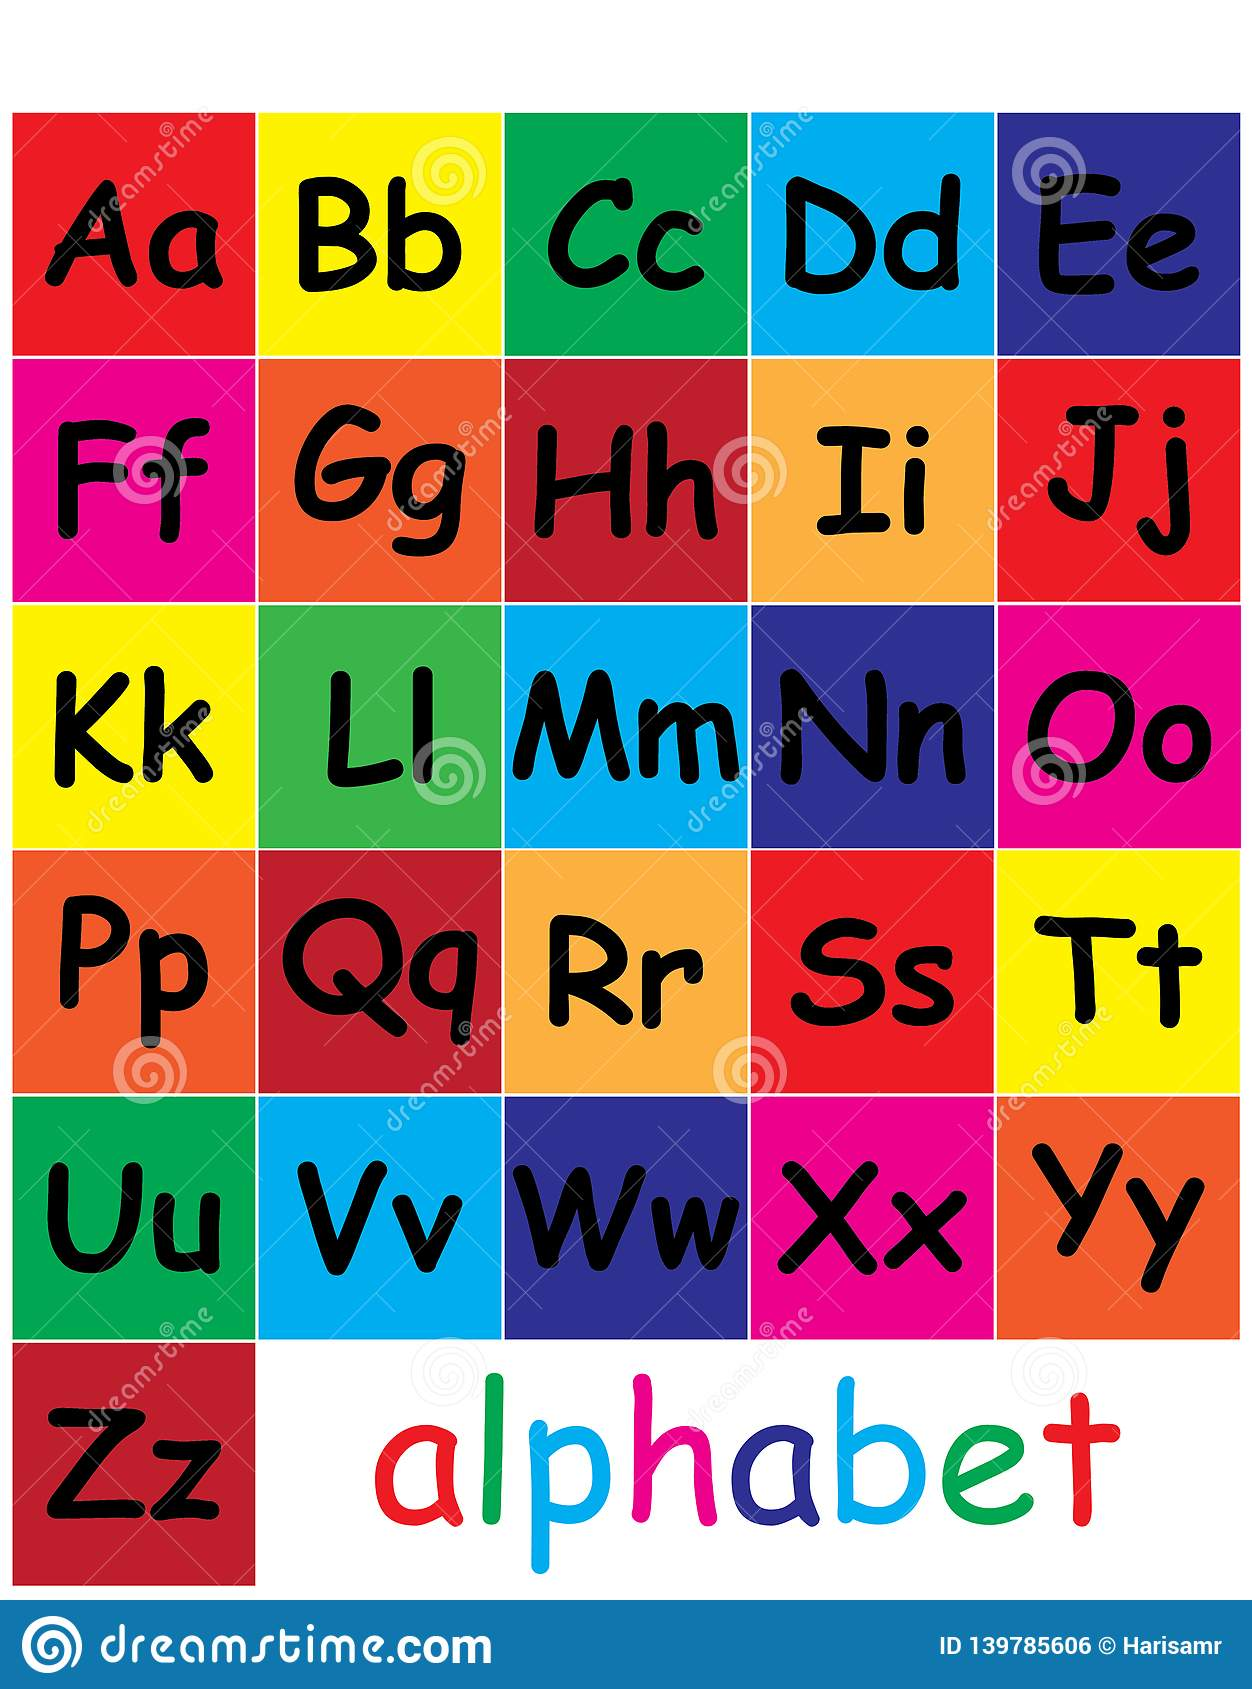 Alphabet Printable Flashcards Vector Collection With